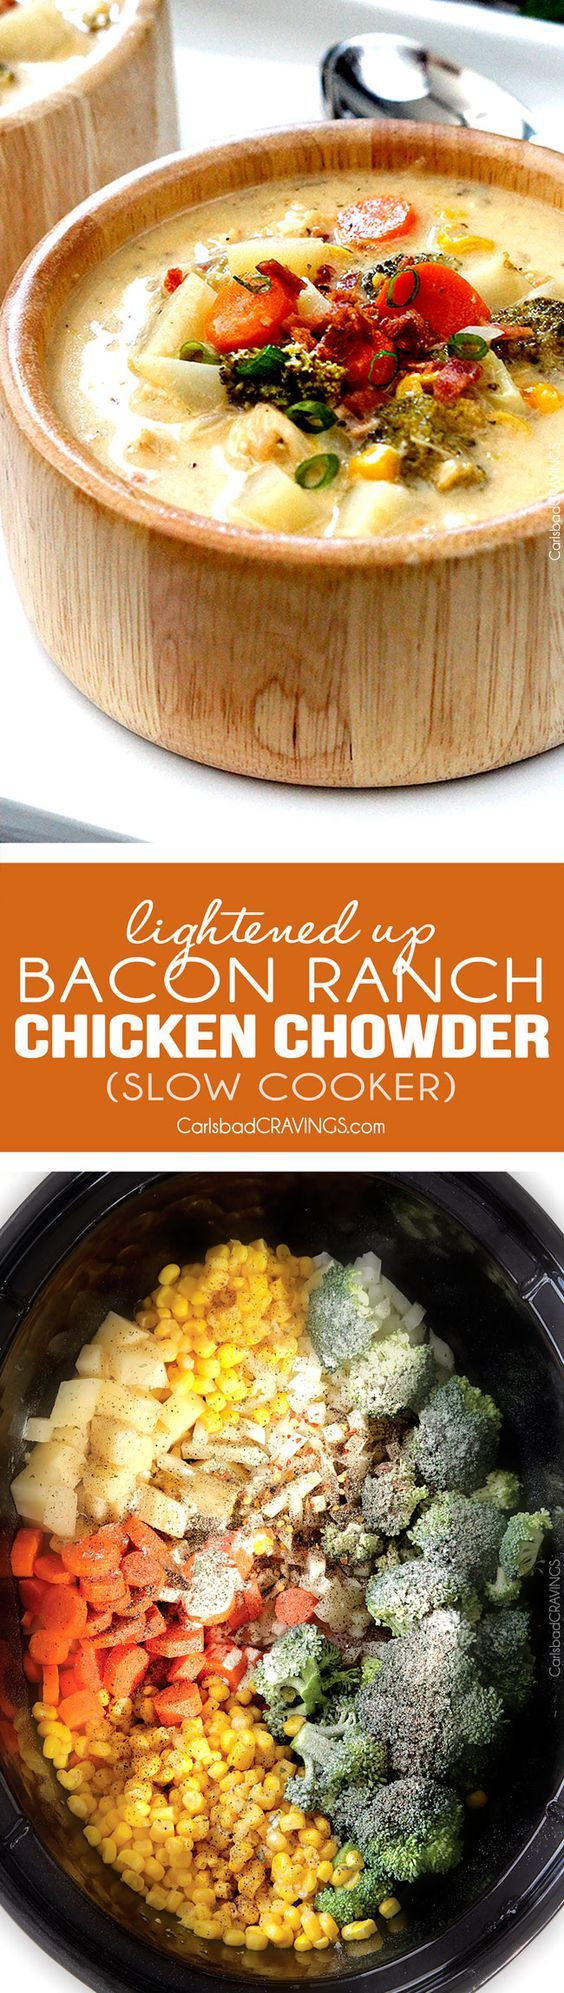 (Lightened up!) flavor packed, EASY creamy, cheesy comforting Slow Cooker Bacon Ranch Chicken Chowder is the ultimate comfort soup packed with corn, potatoes and broccoli with NO butter or cream but SO much flavor!! #broccolicheesesoup #chowder #potatosoup via @carlsbadcraving